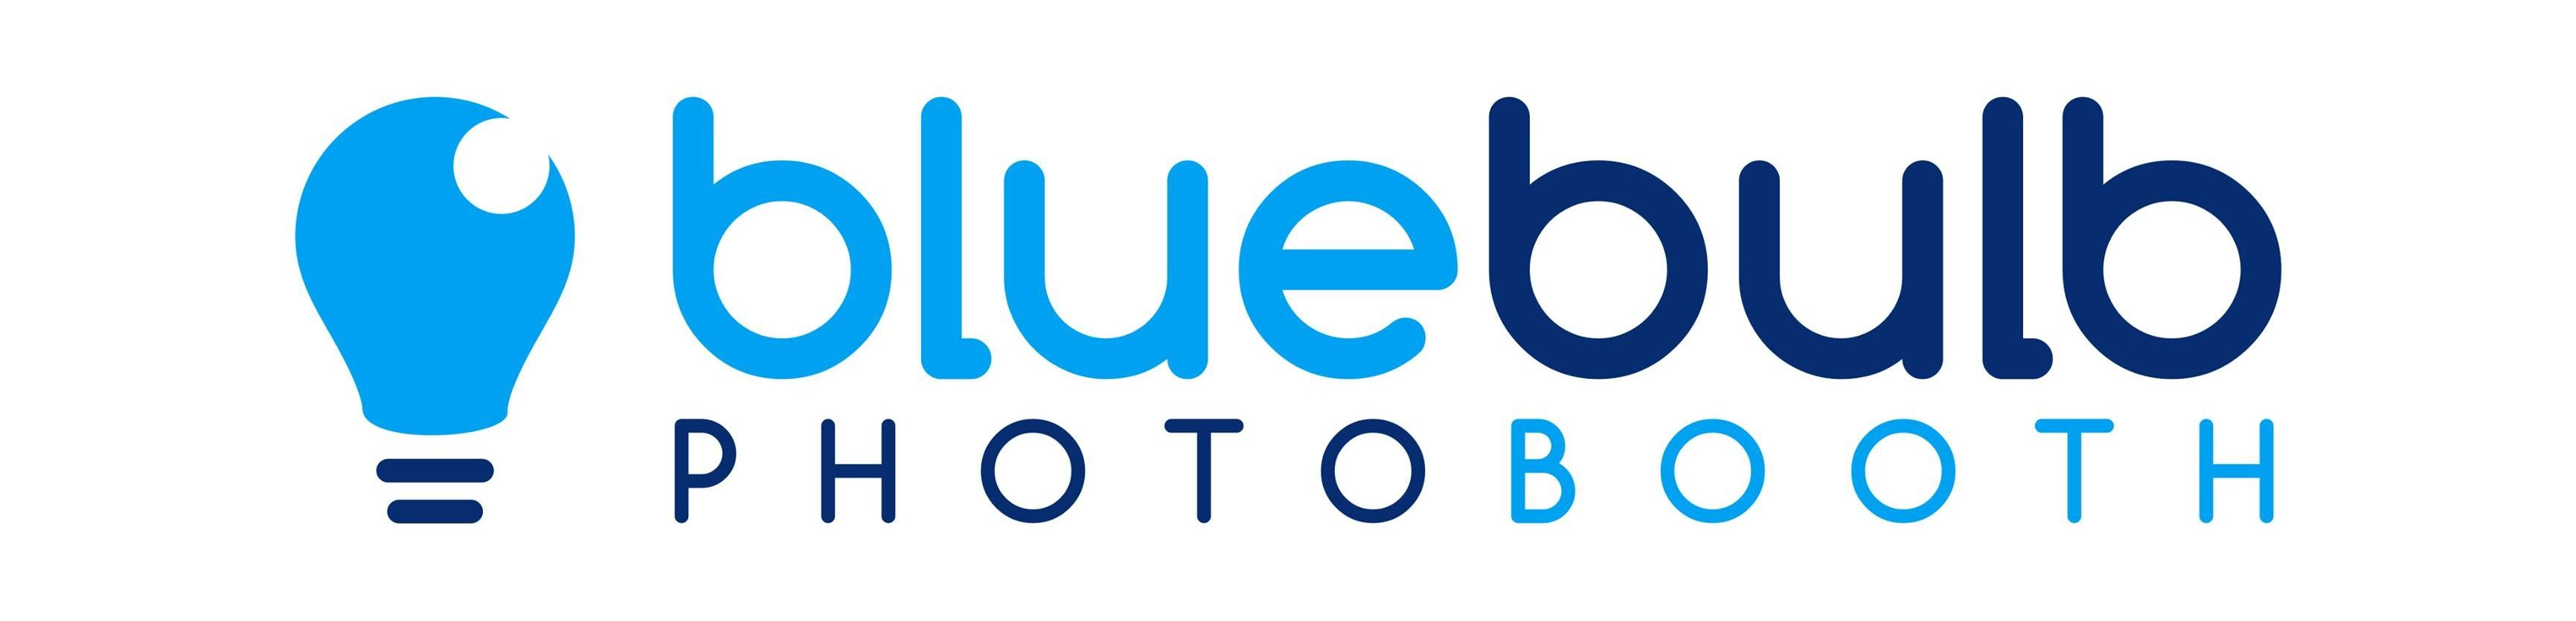 Blue Bulb Photo Booth